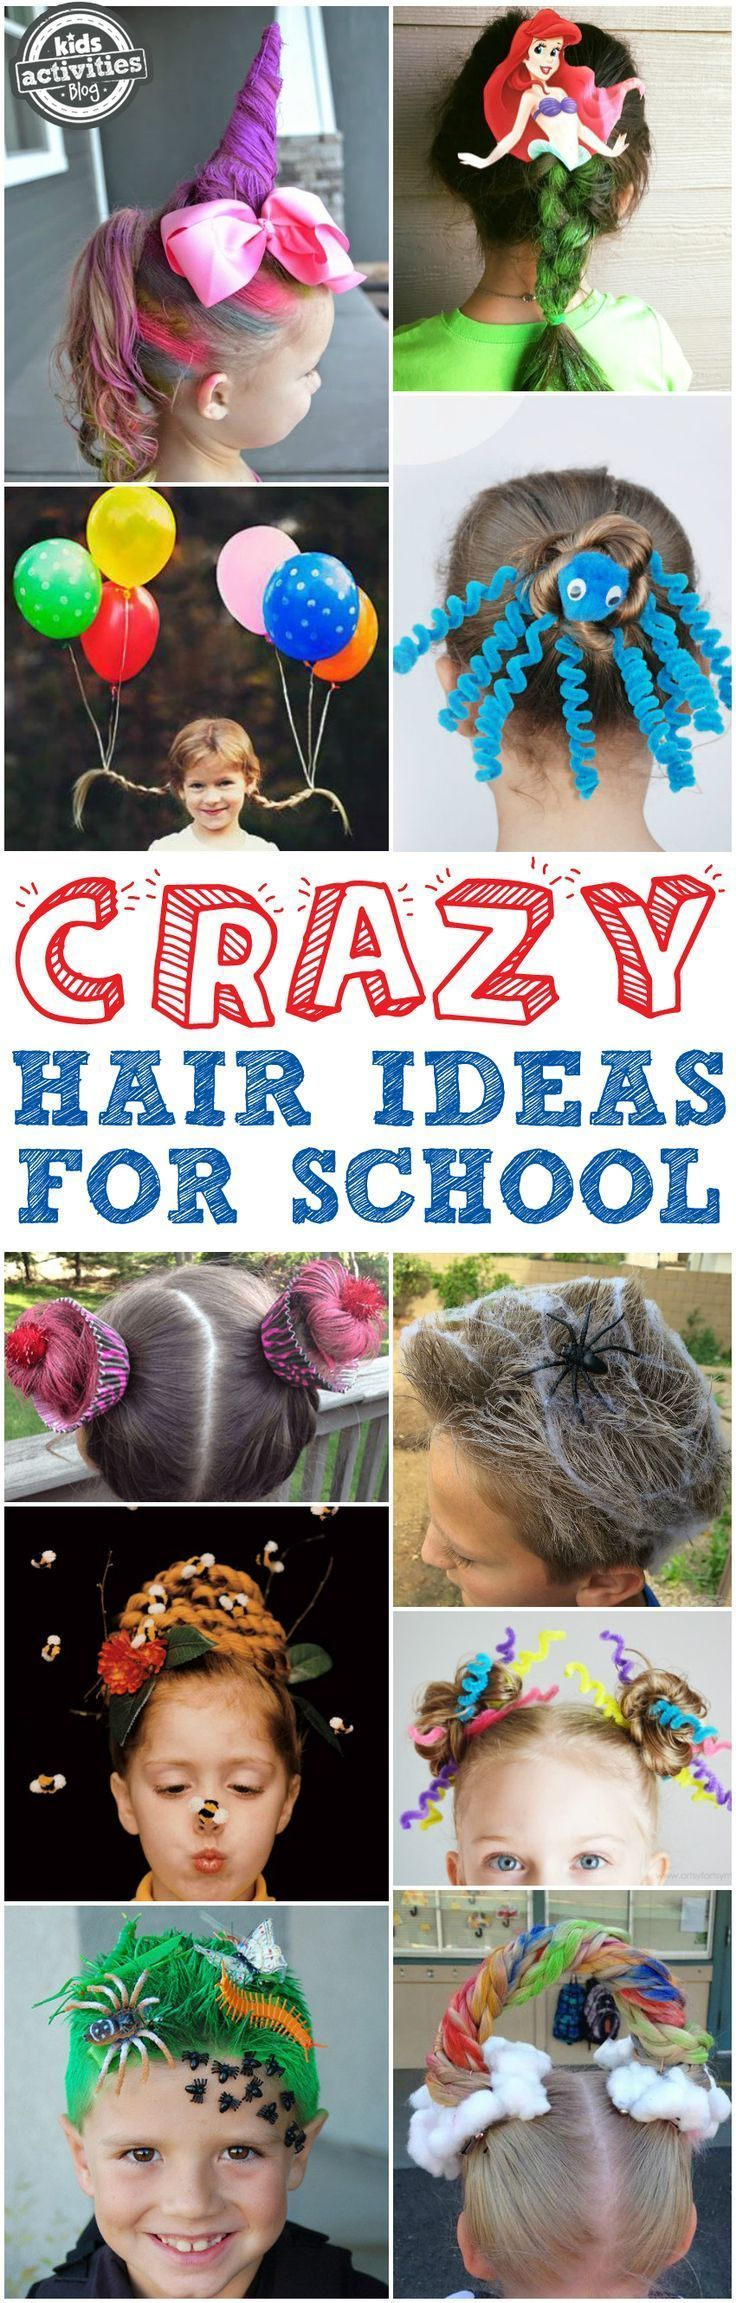 crazy hair day ideas for school | crazy hair, grasses and unicorns